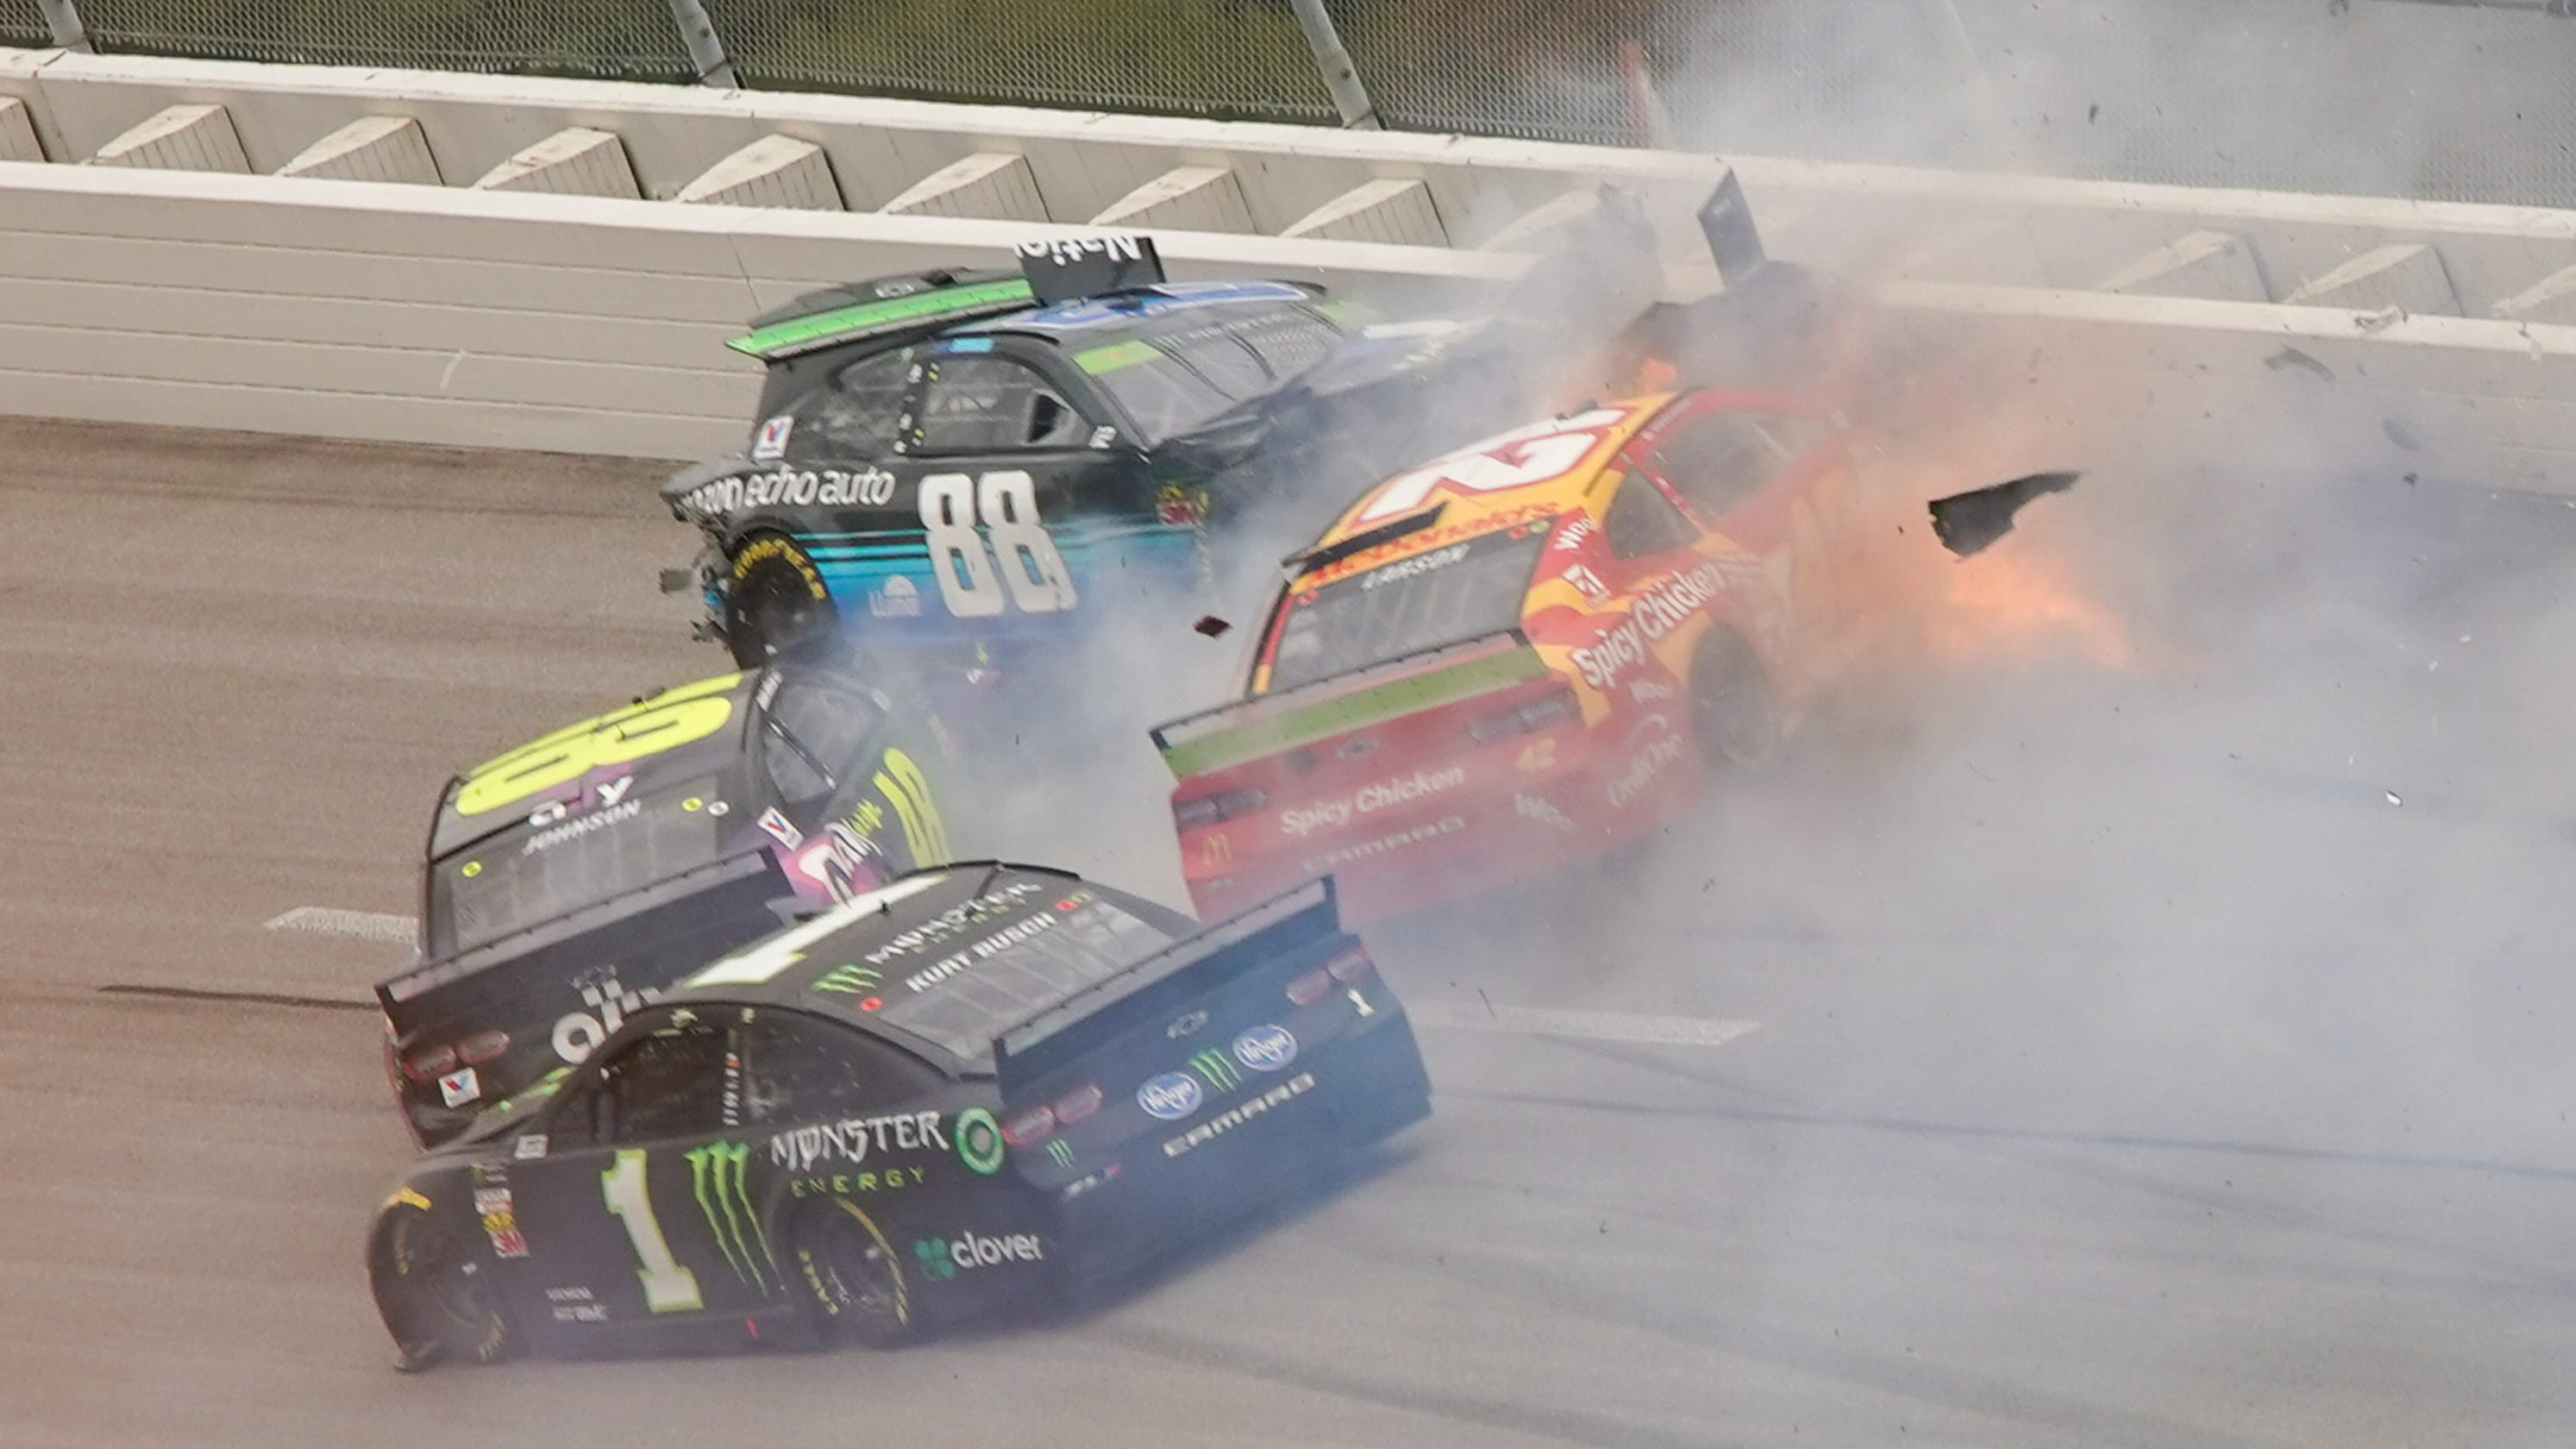 Ryan Blaney wins in a photo finish as crashes decimate the field at Talladega playoff race